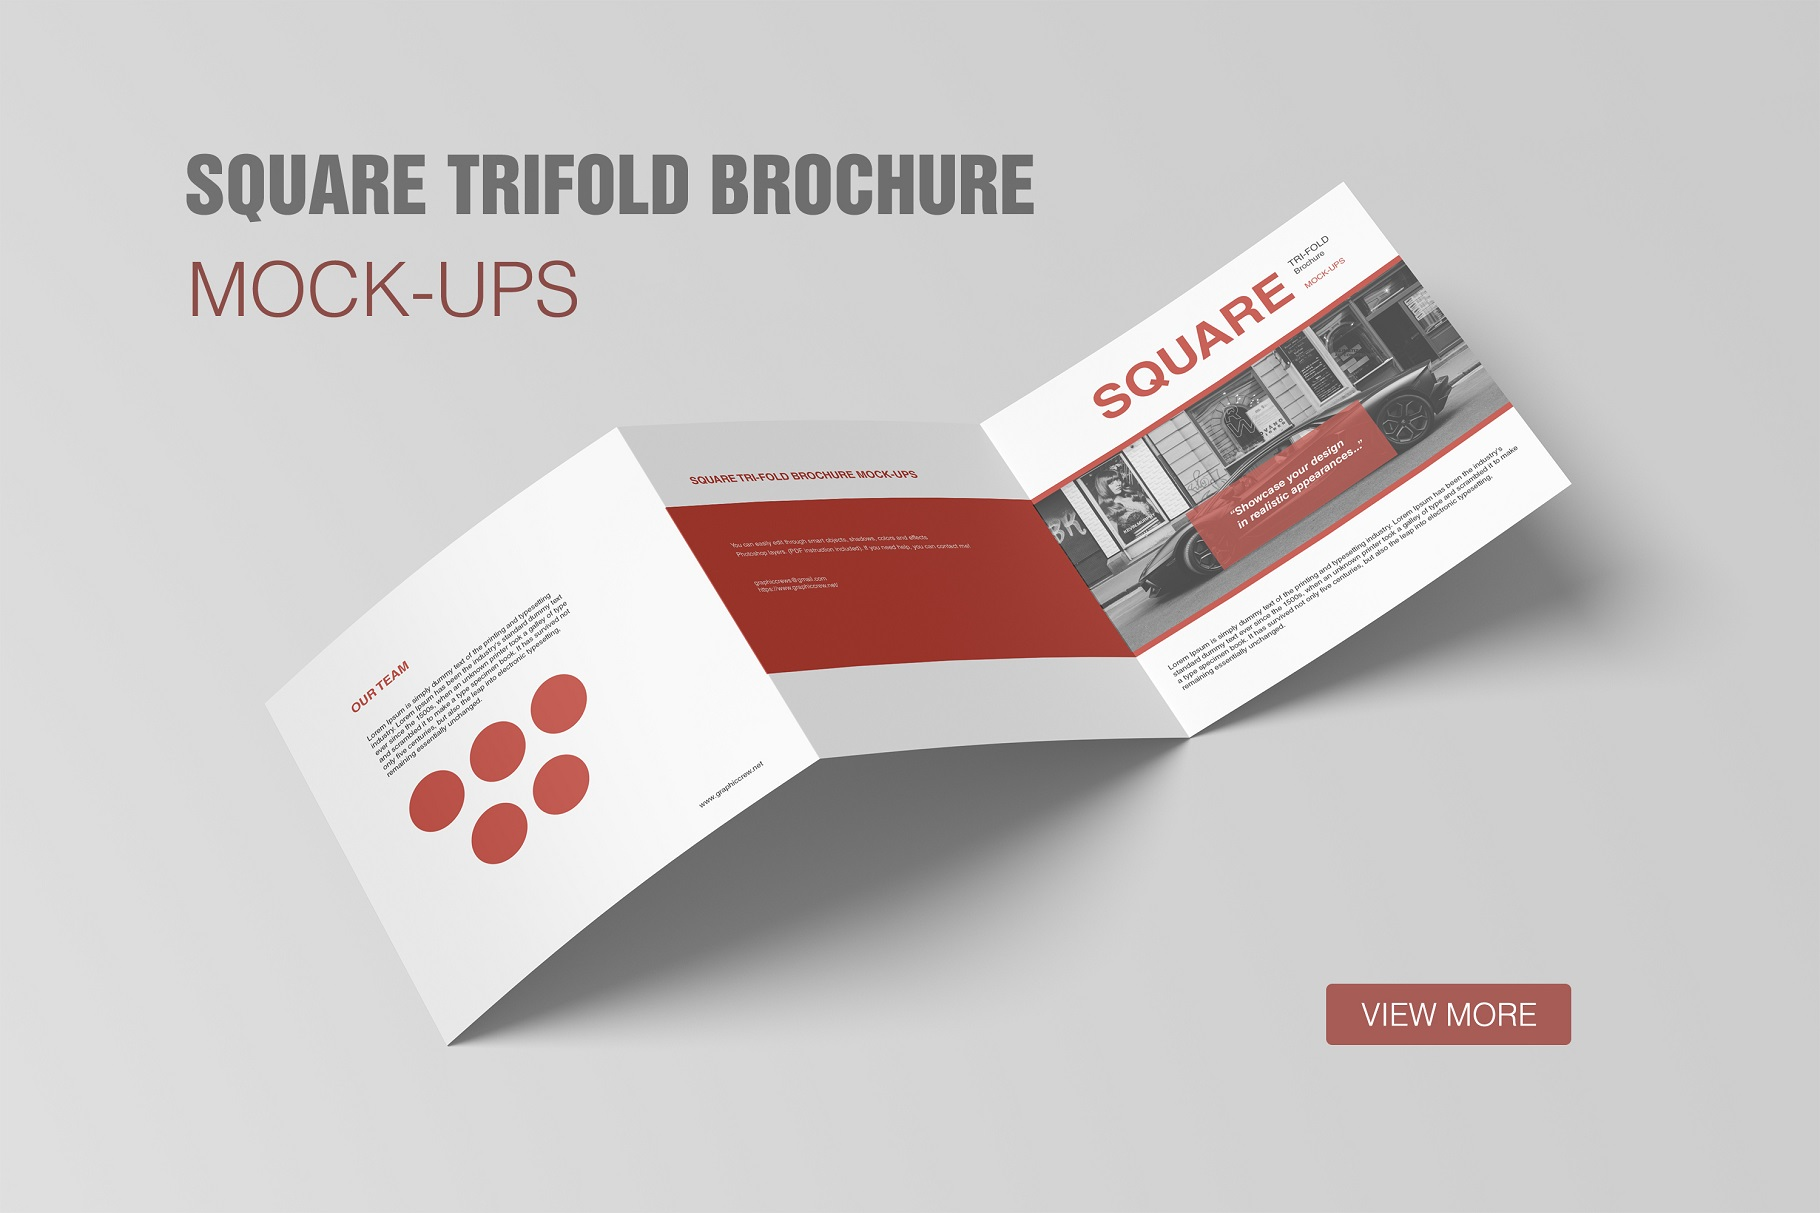 square trifold brochure mockup by graph design bundles